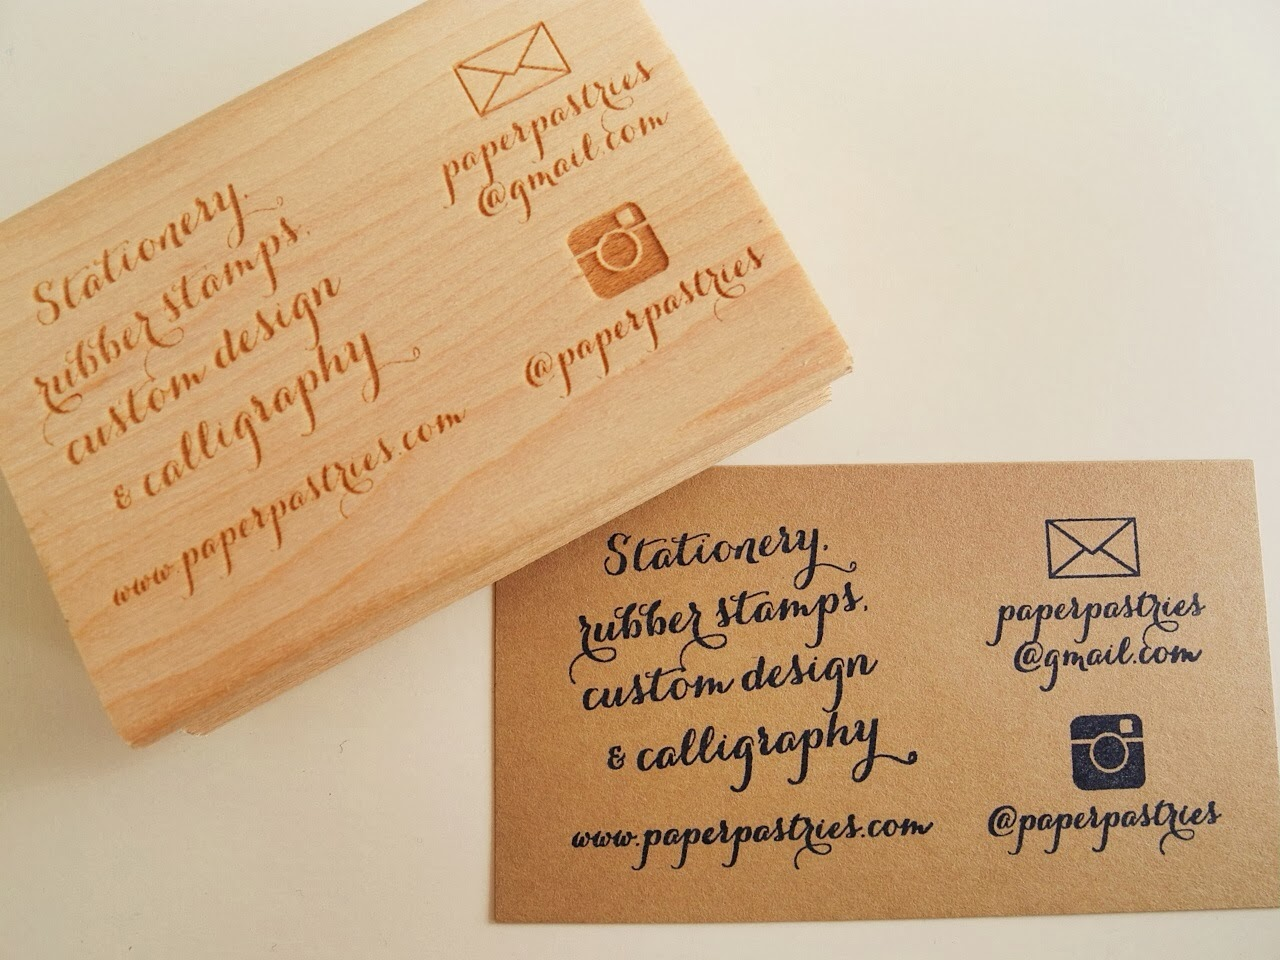 paper pastries: Shop Update - New Business Card Rubber Stamp